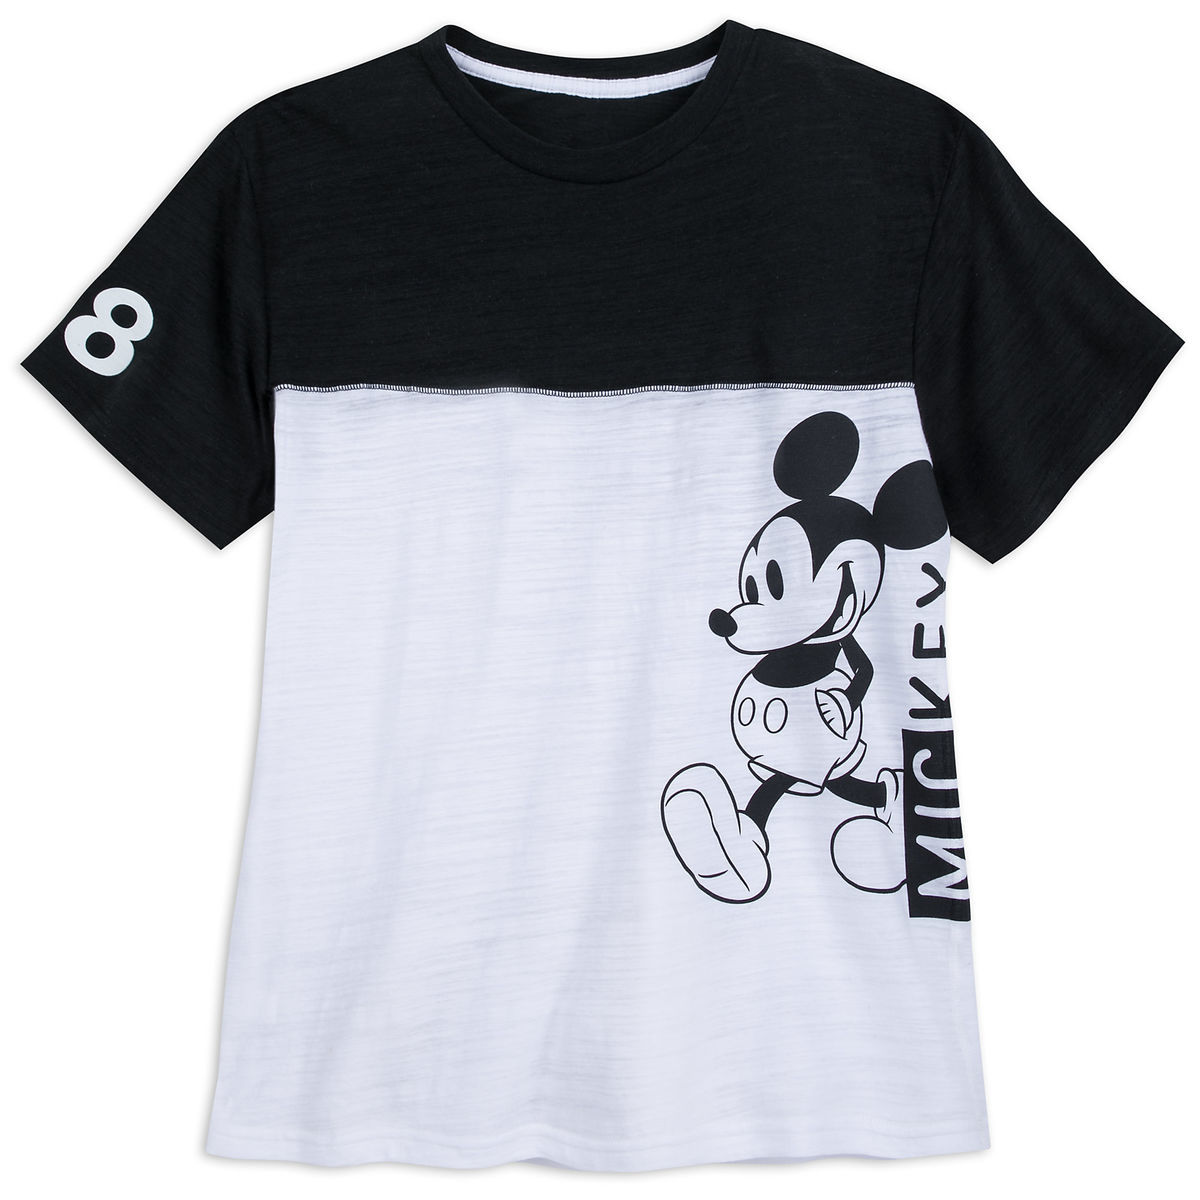 mickey mouse sports jersey t shirt for men shopdisney